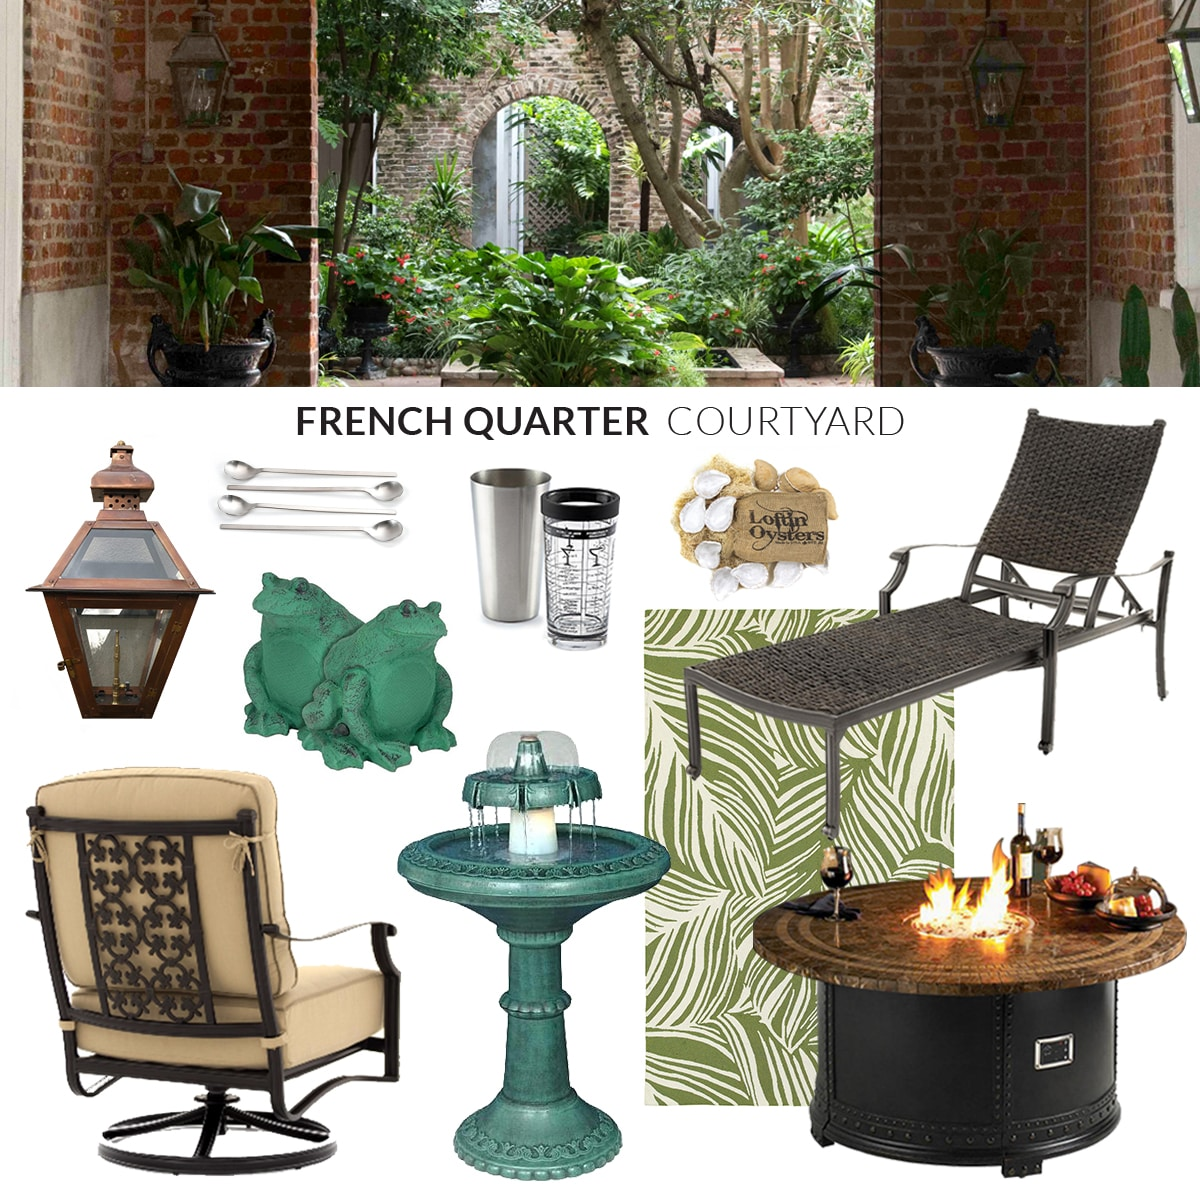 French Quarter Courtyard inspired outdoor products